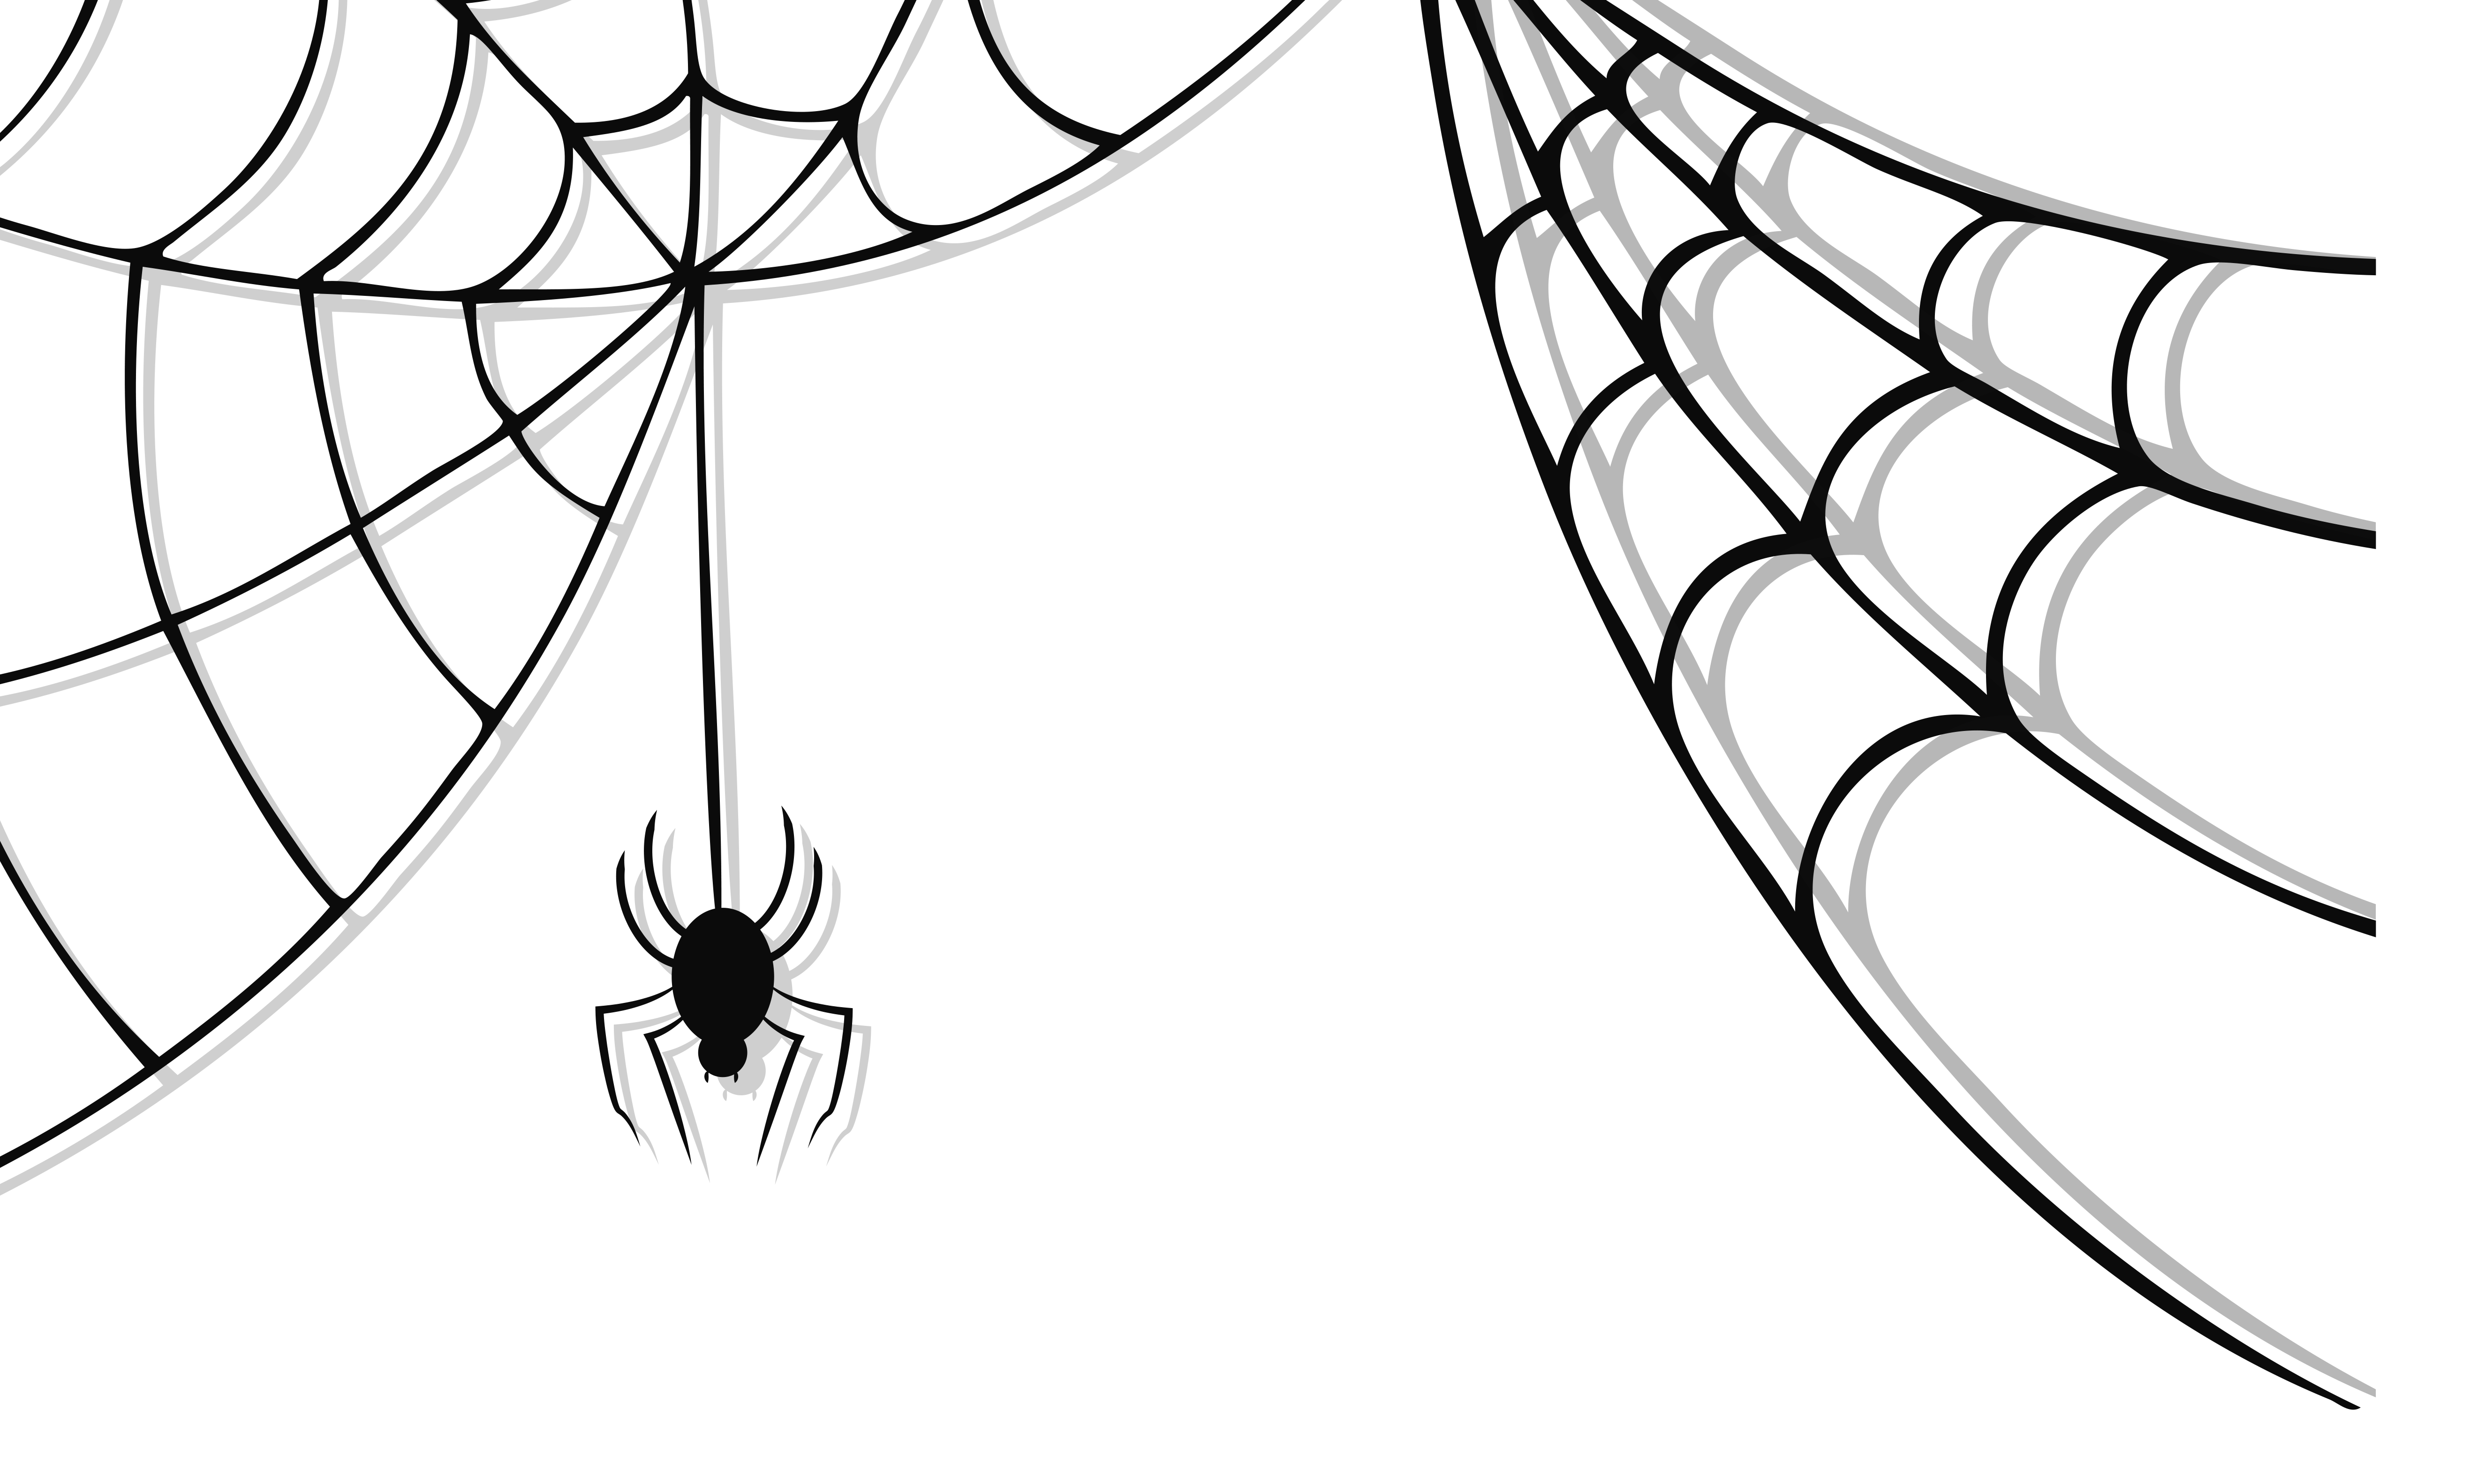 Cartoon Spider Web Wallpapers - Top Free Cartoon Spider Web ...